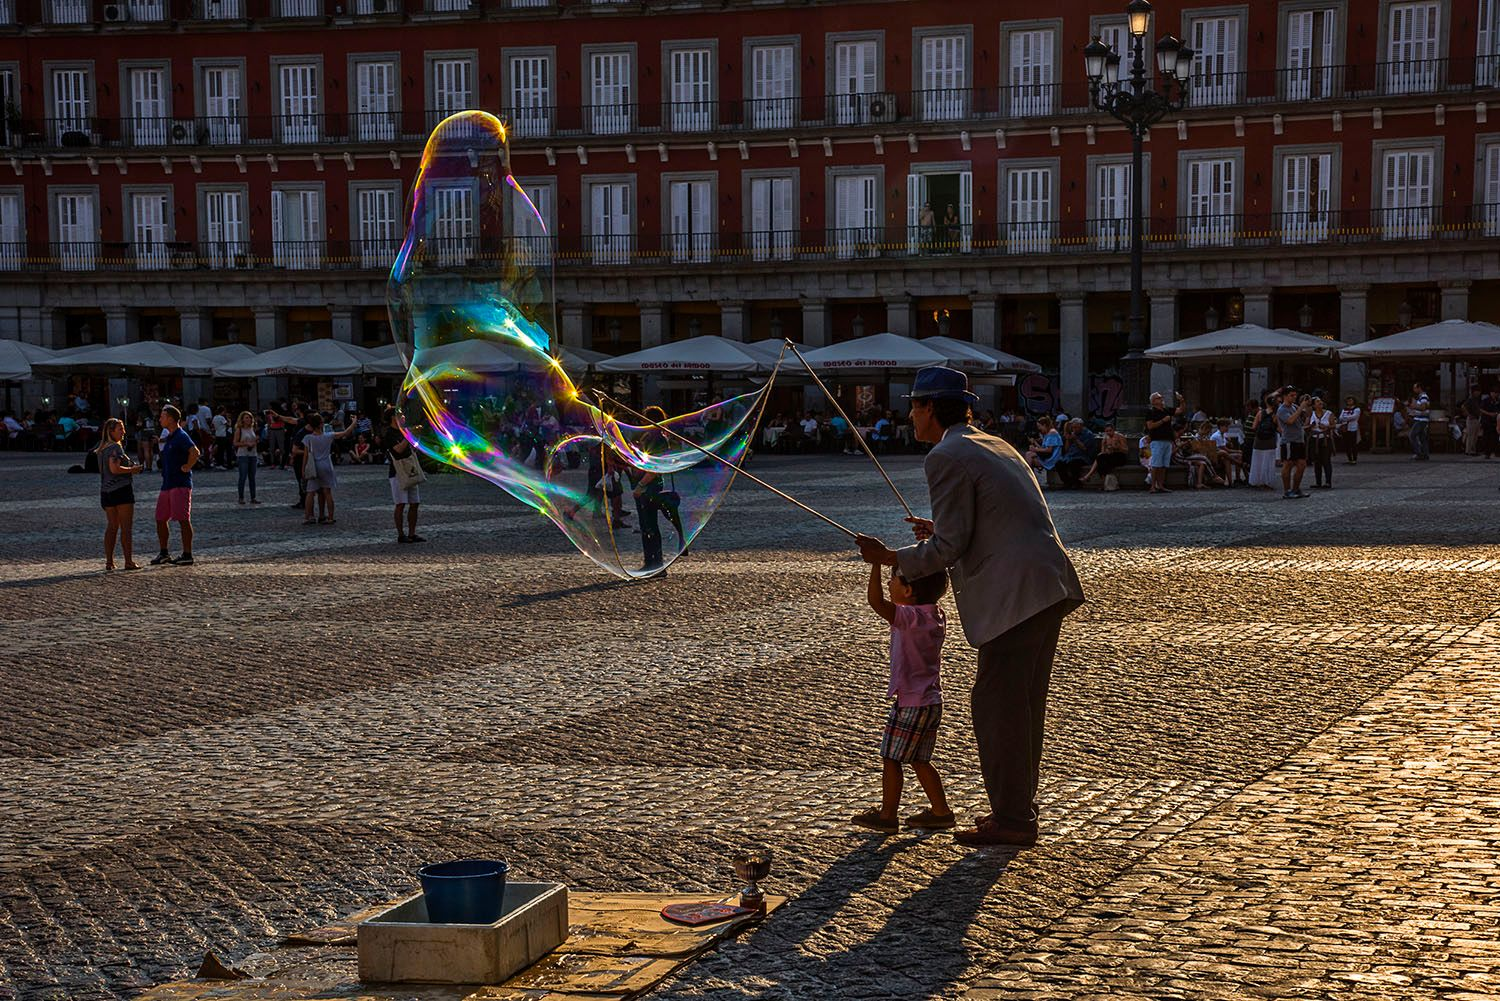 Man and child making large soap bubble